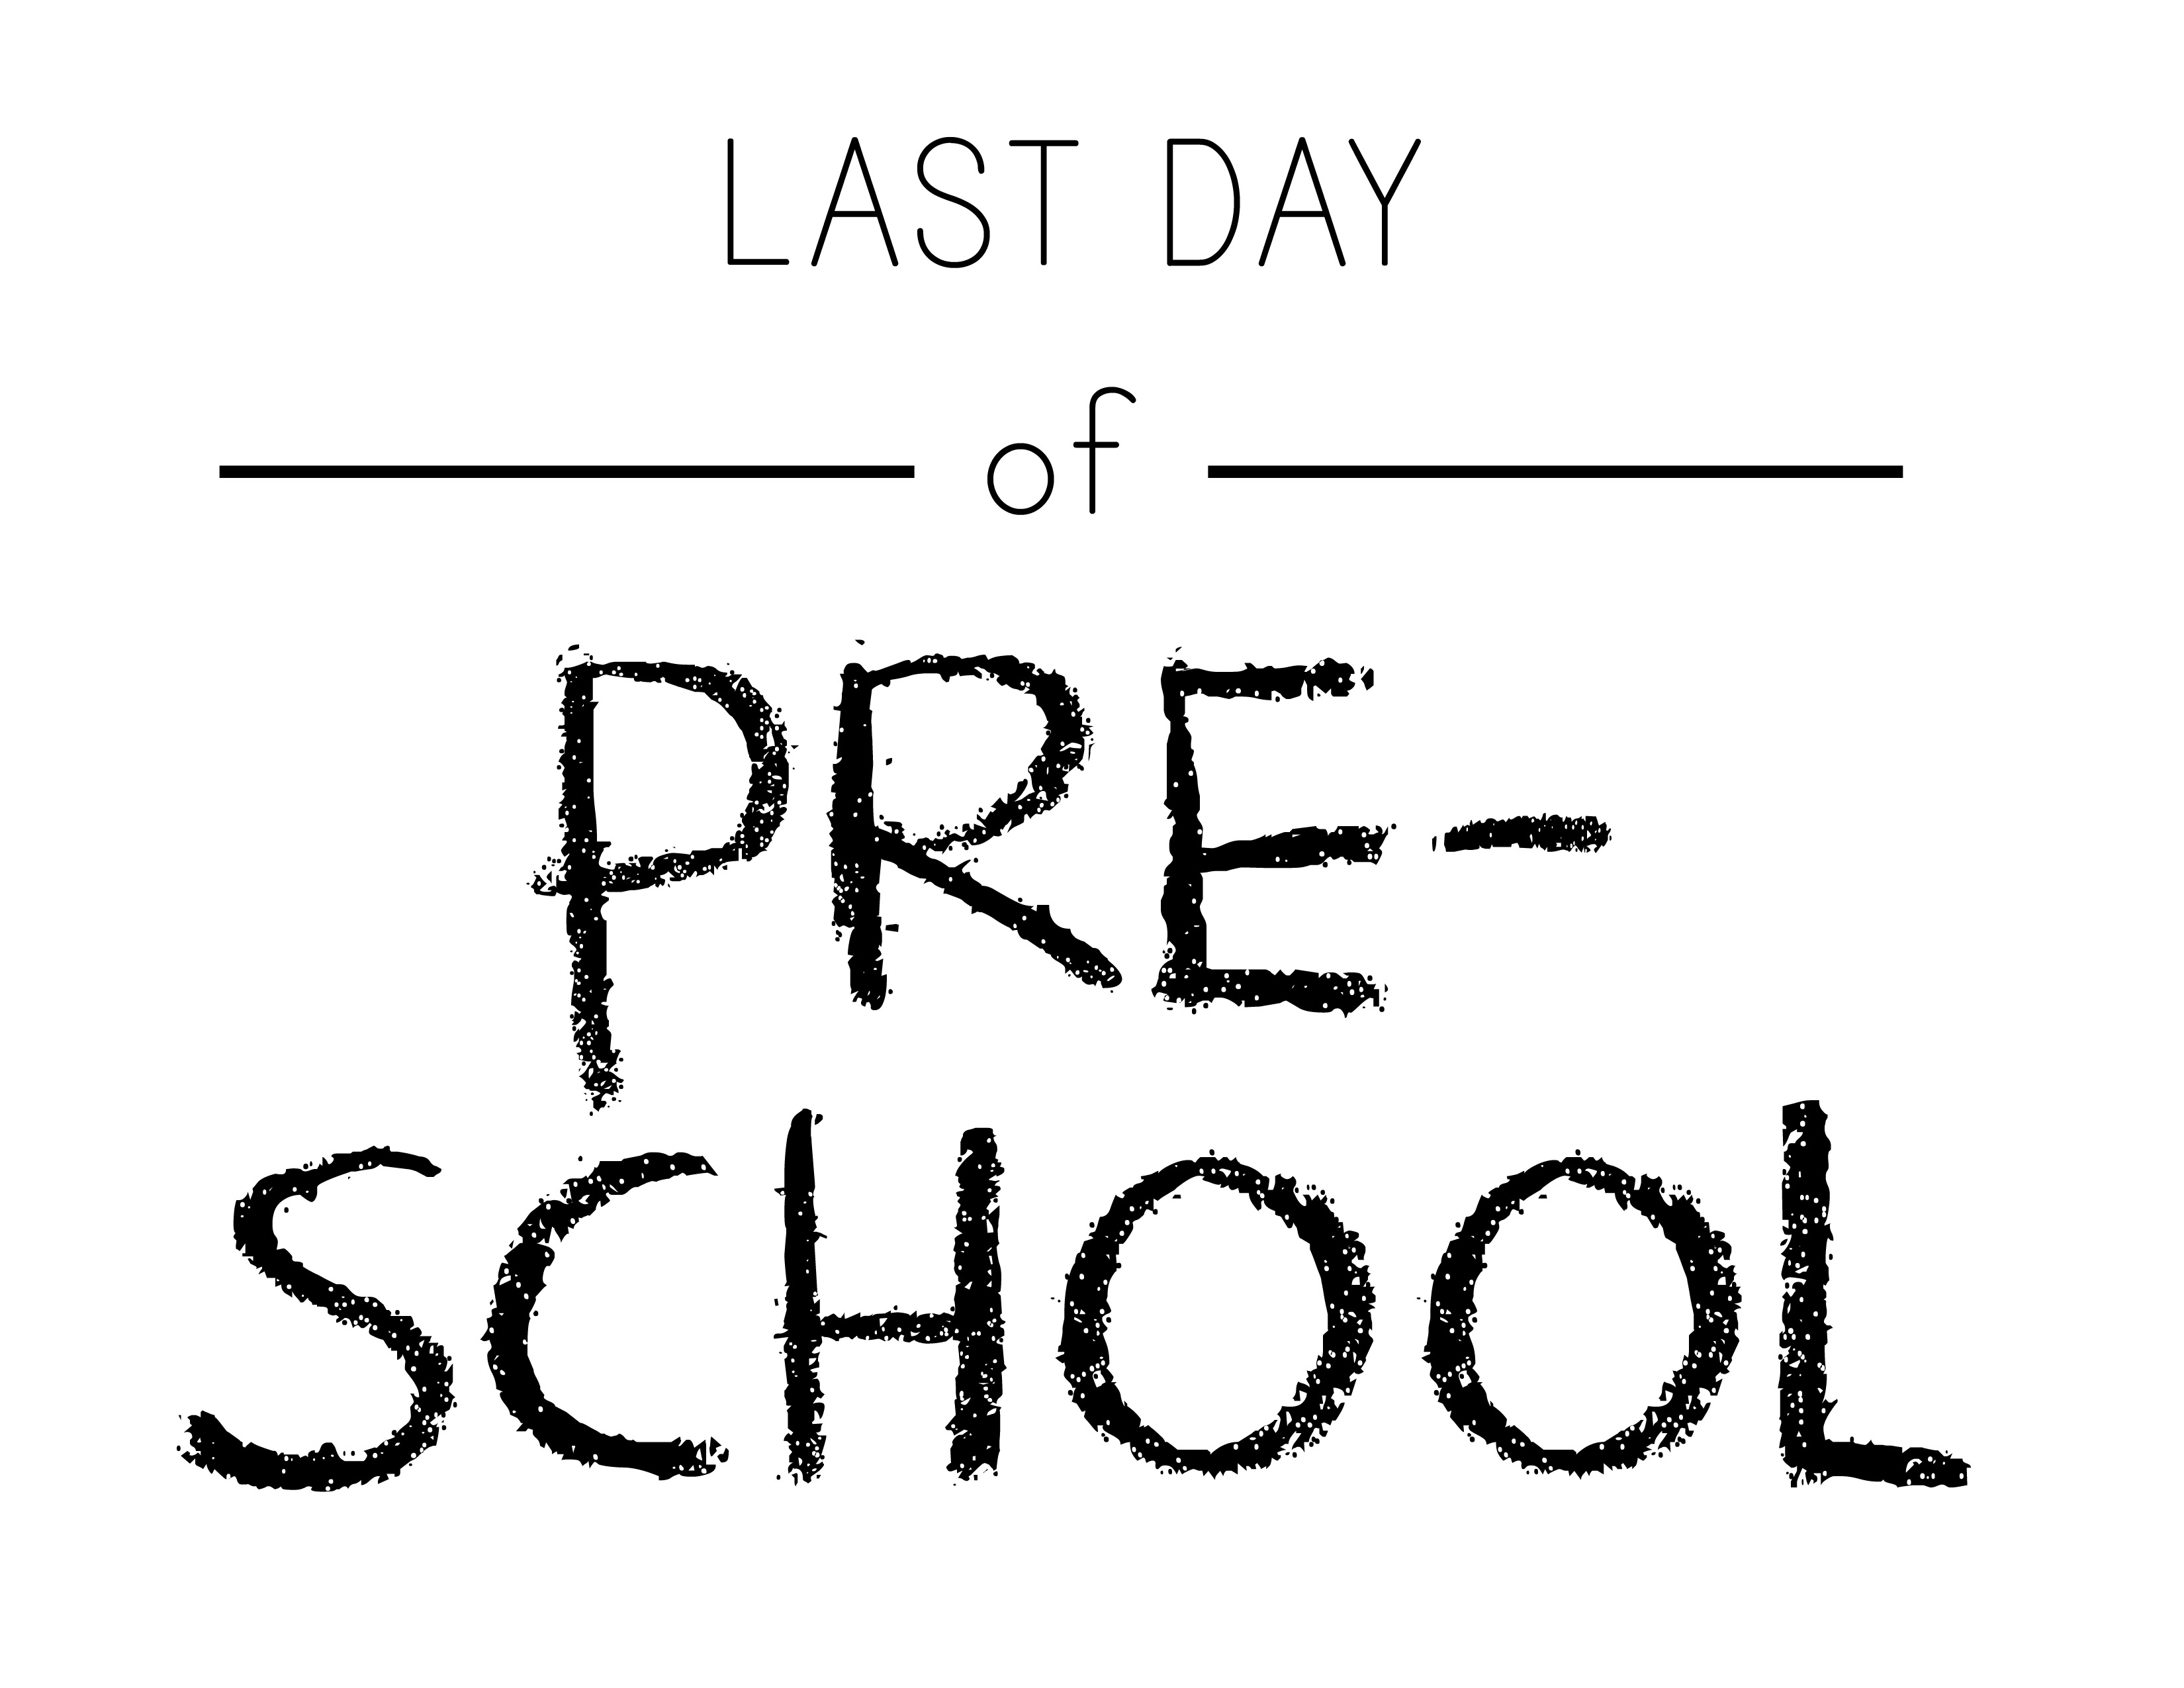 It's just a picture of Shocking Last Day of Preschool Printable